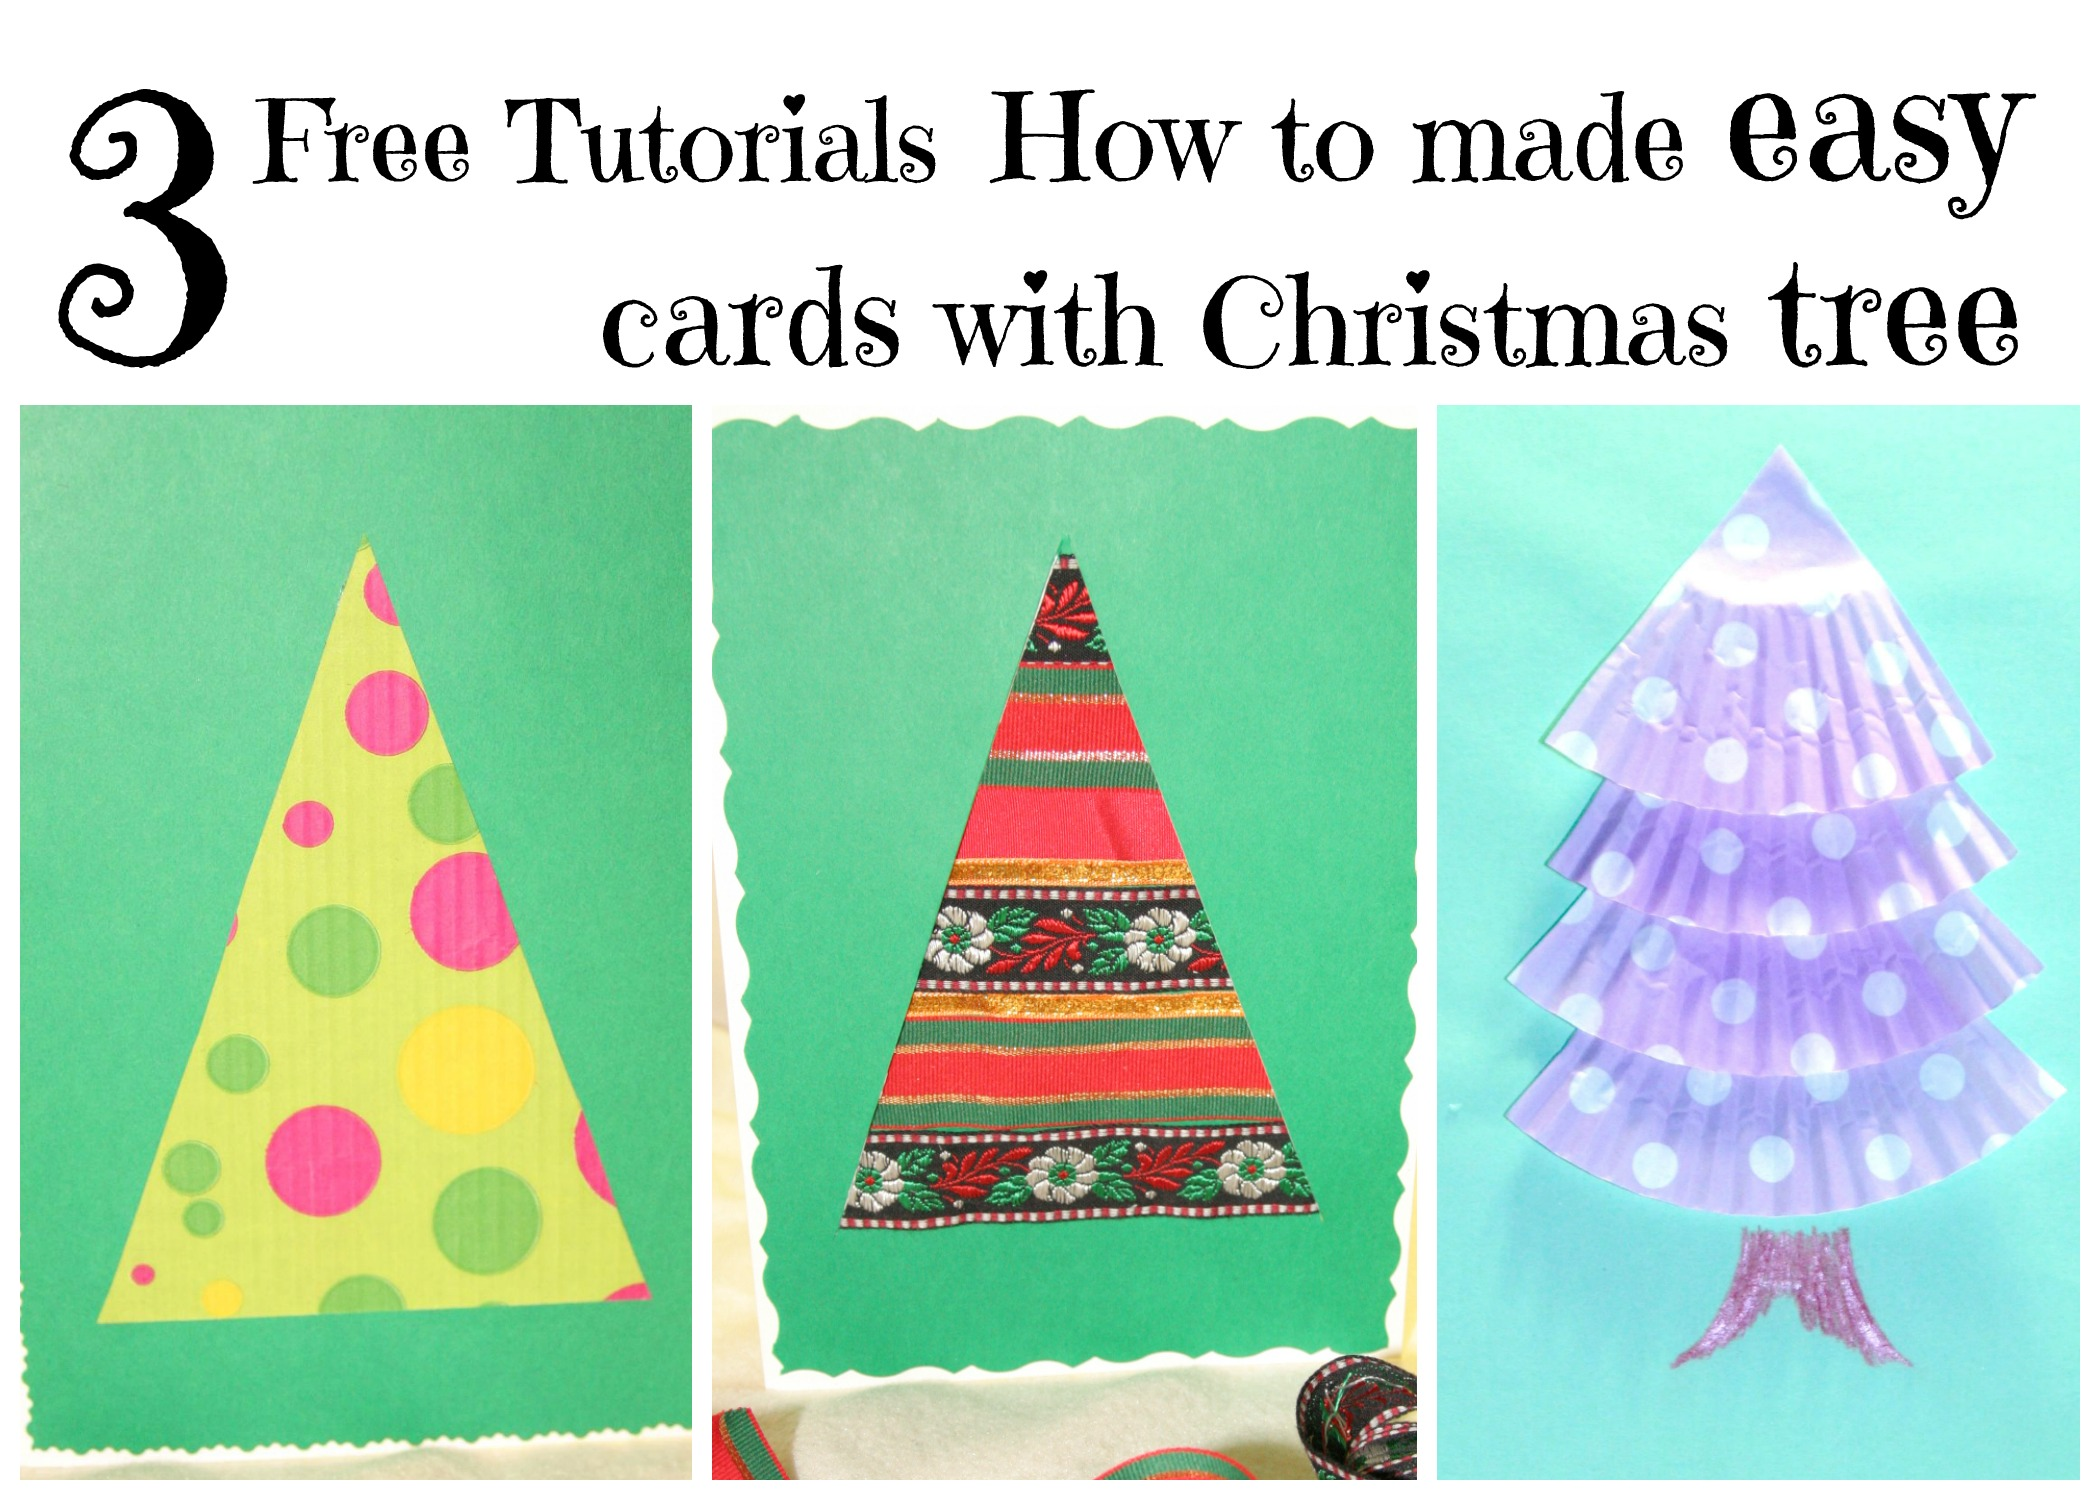 cards-with-christmas-tree-2